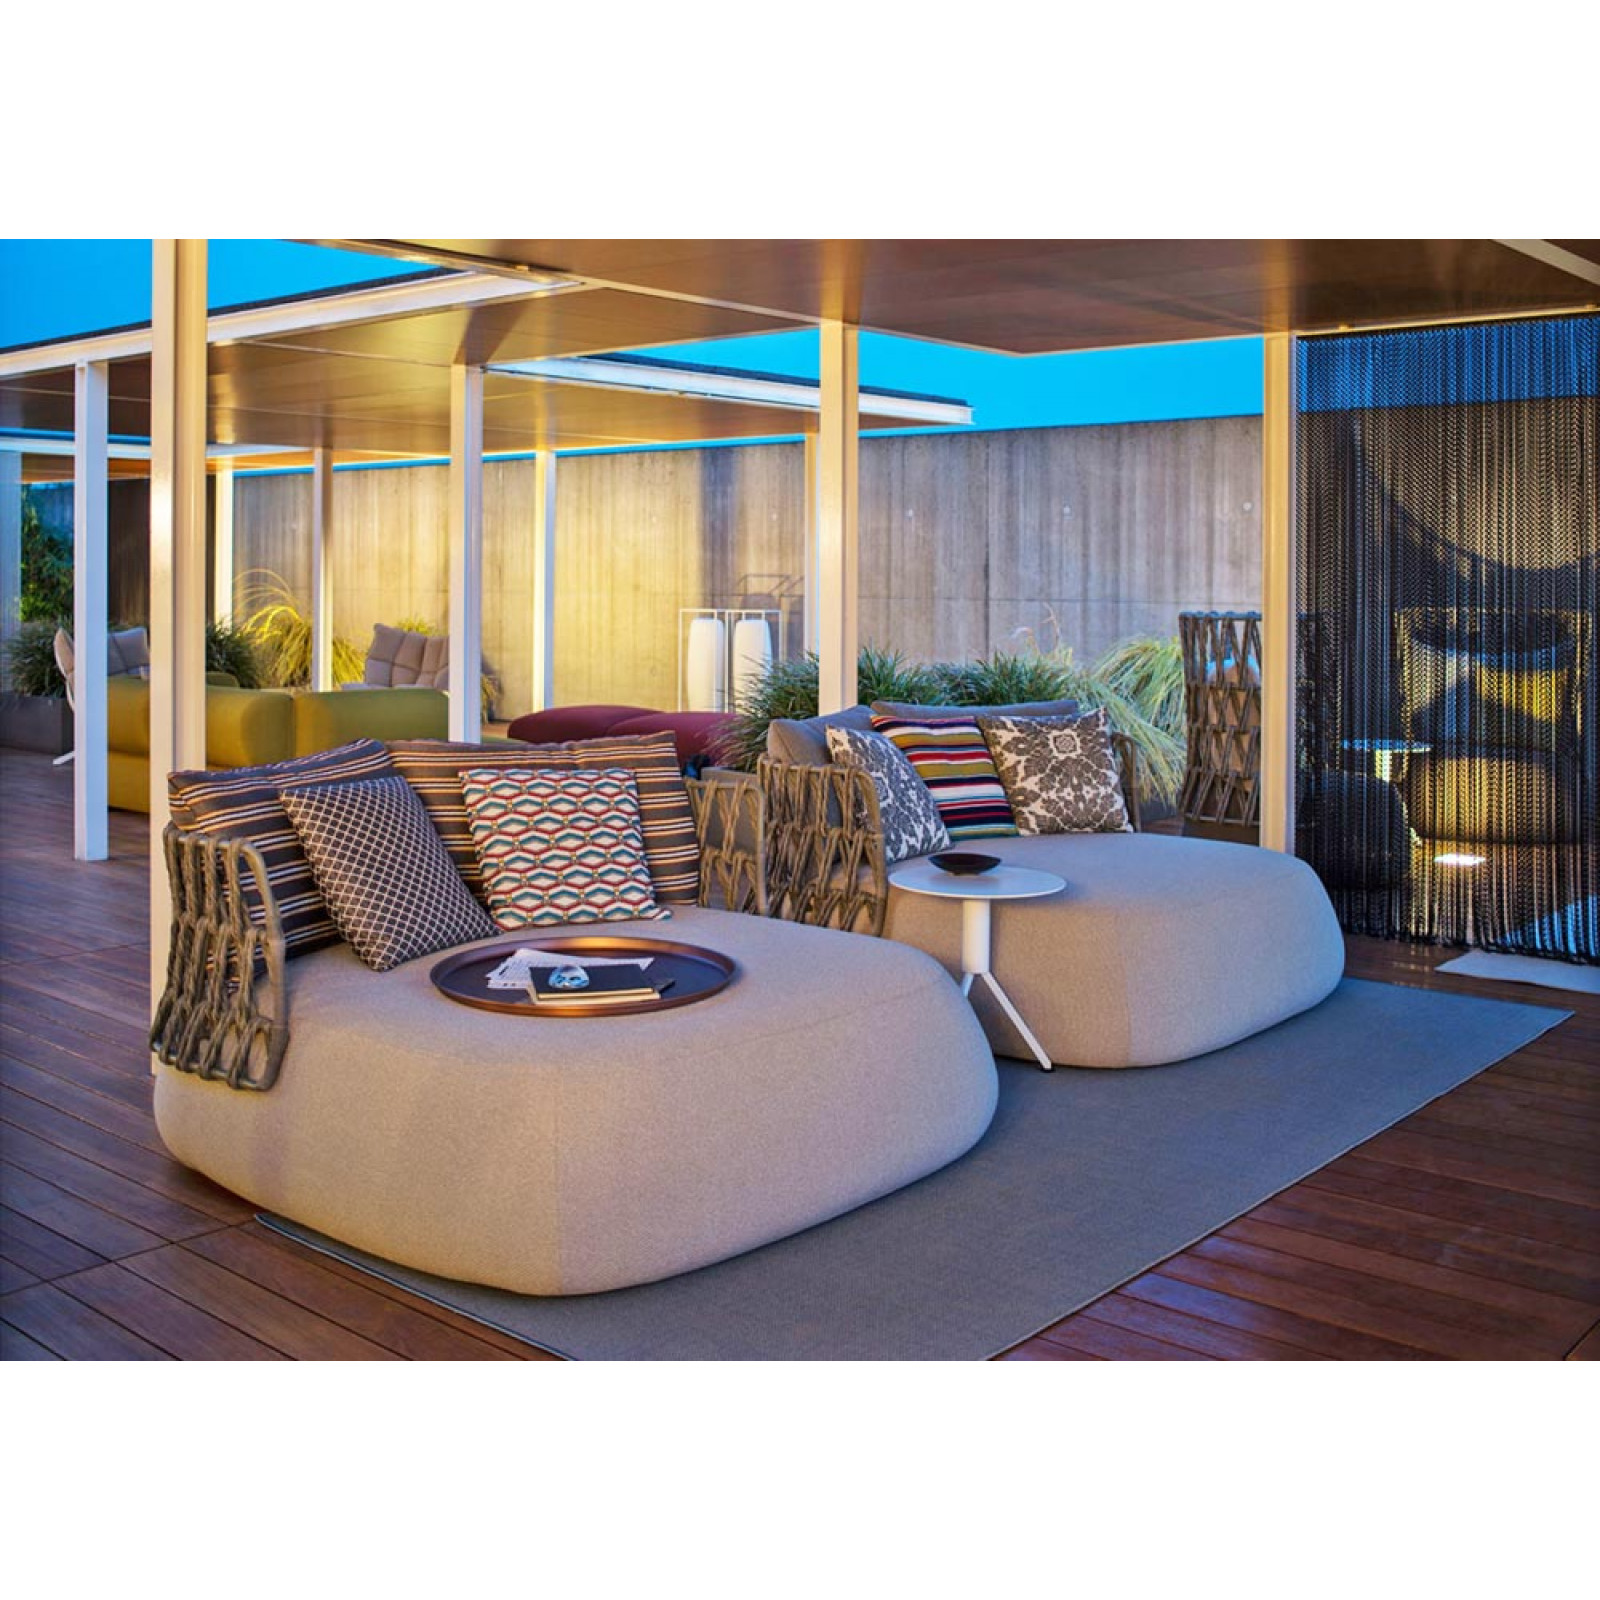 B&B Italia Fat Outdoor Loungegruppe, Fat Gartensofas